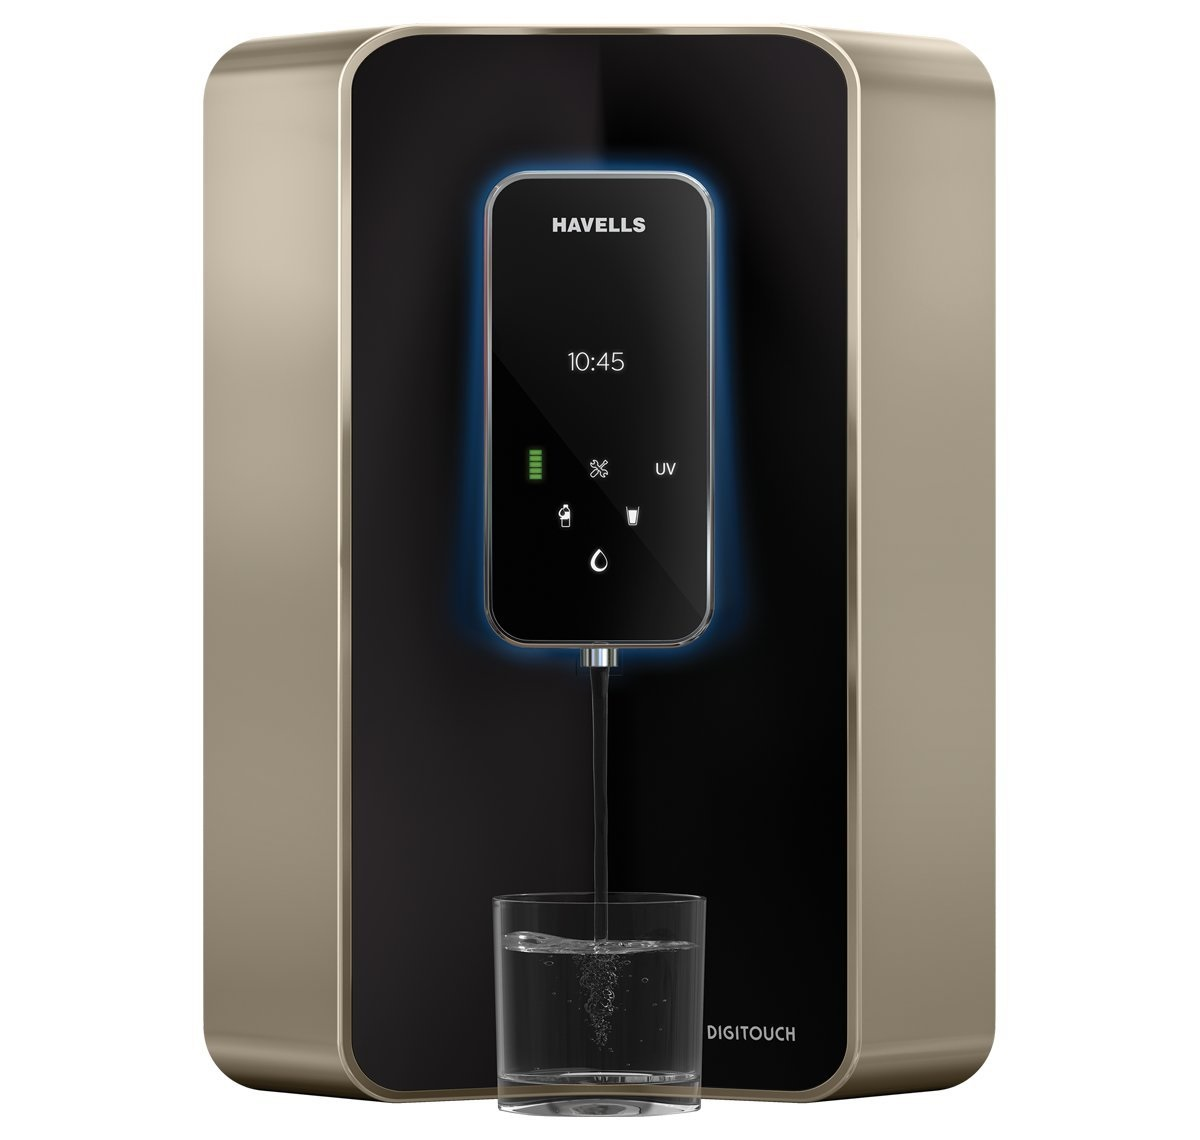 Havells DIGITOUCH 100% RO & UV WITH & pHLEVEL MAINTAINED 7L RO+UV Water <br />Purifier Image